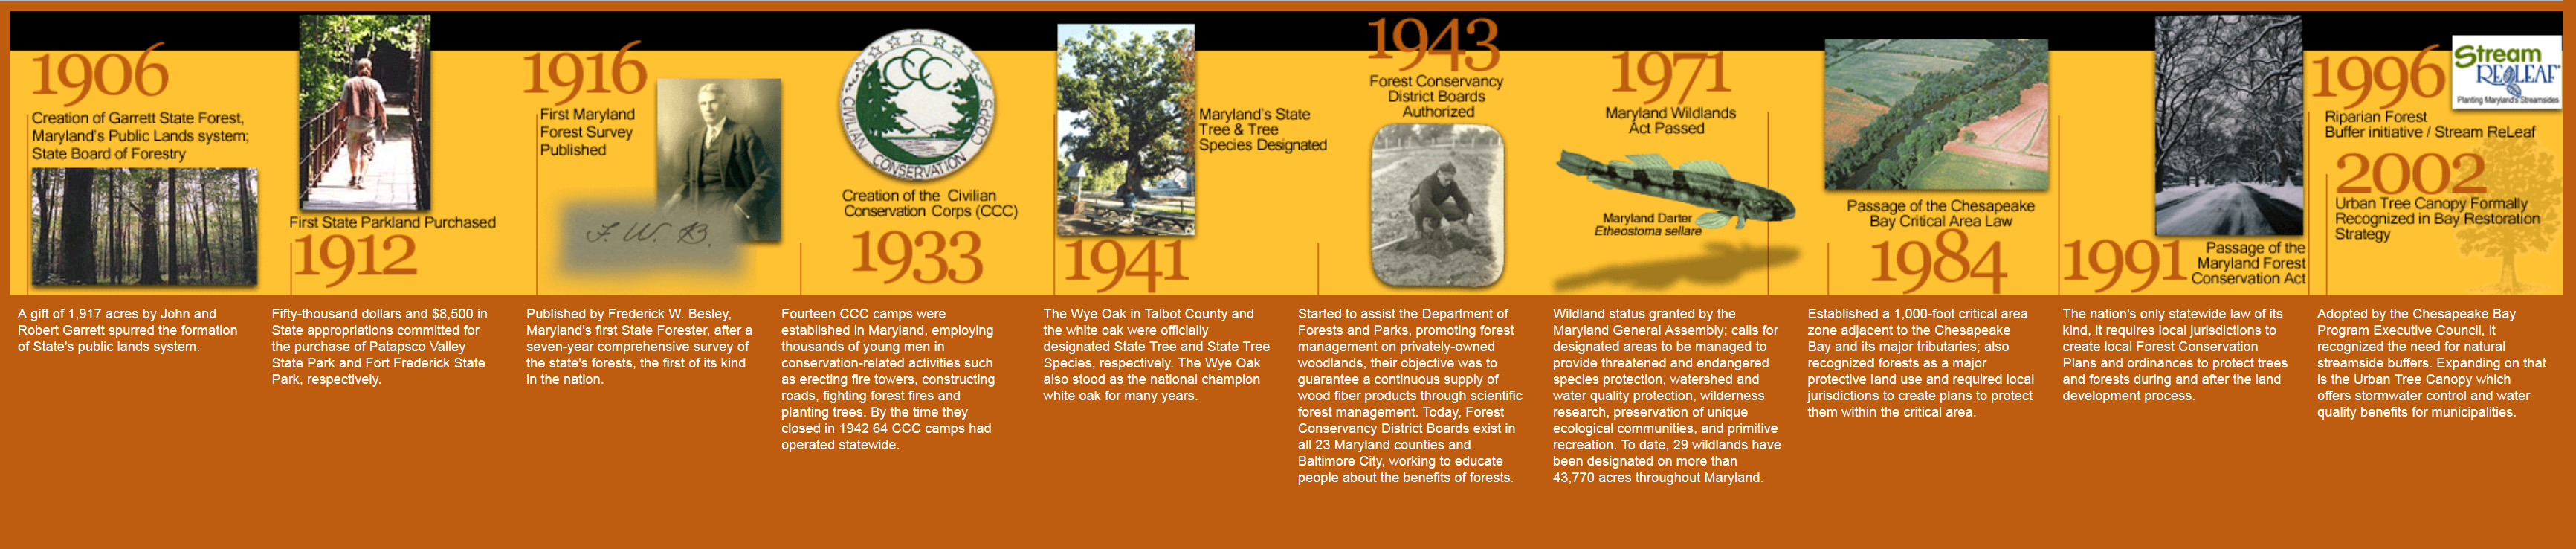 Maryland State Forestry & Parks Centennial Celebration Timeline